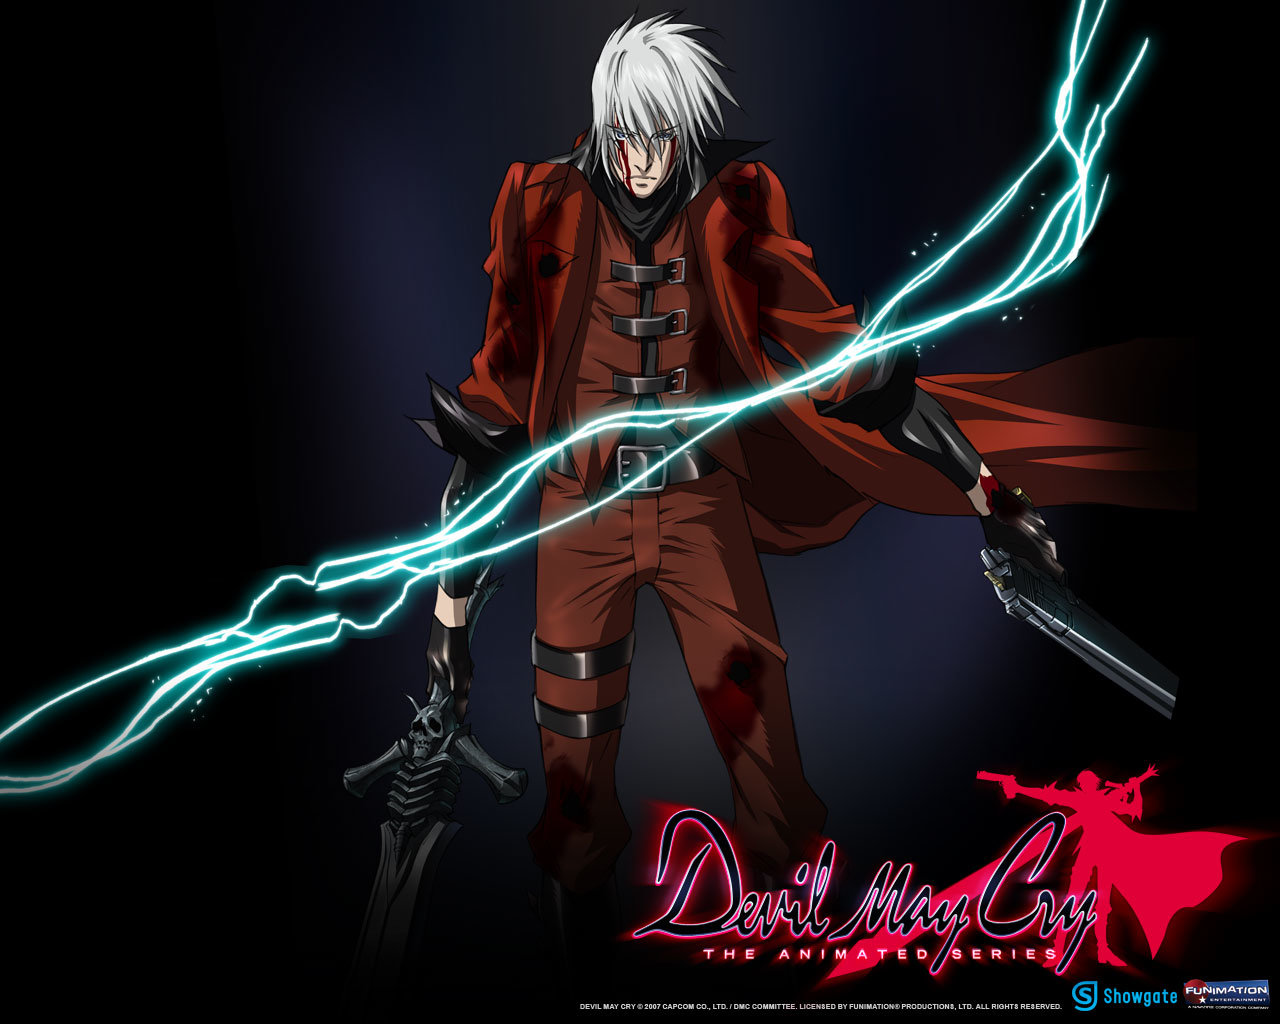 Download hd 1280x1024 Devil May Cry Anime desktop background ID:315070 for free